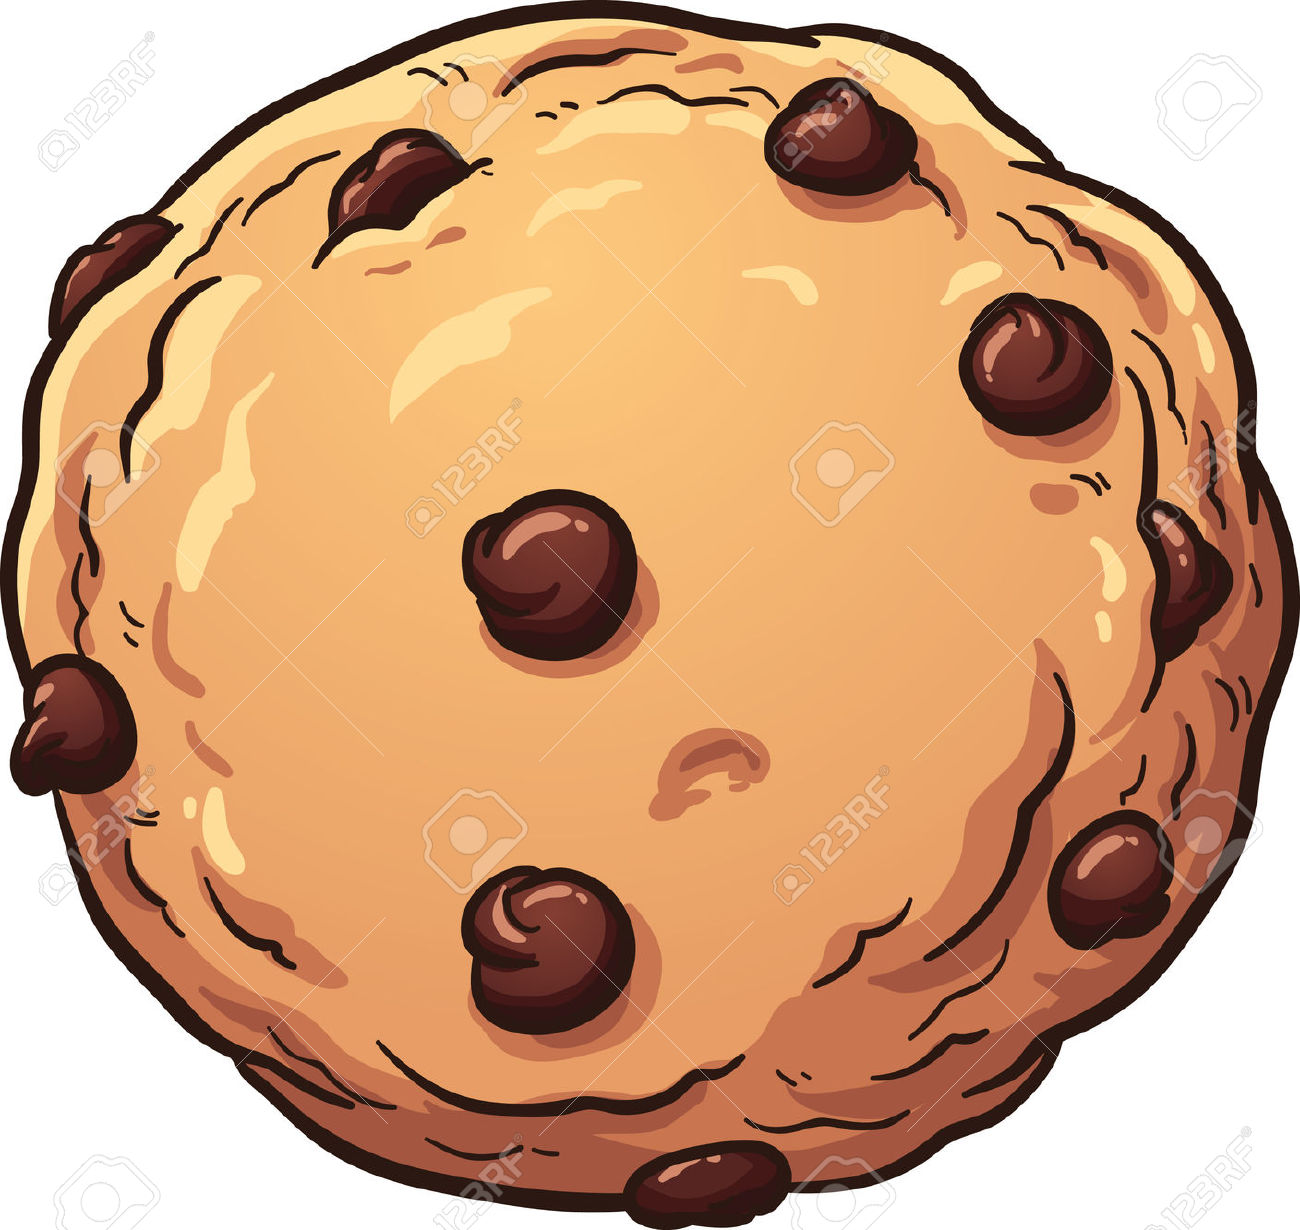 1300x1230 Chocolate Chip Cookies Clipart